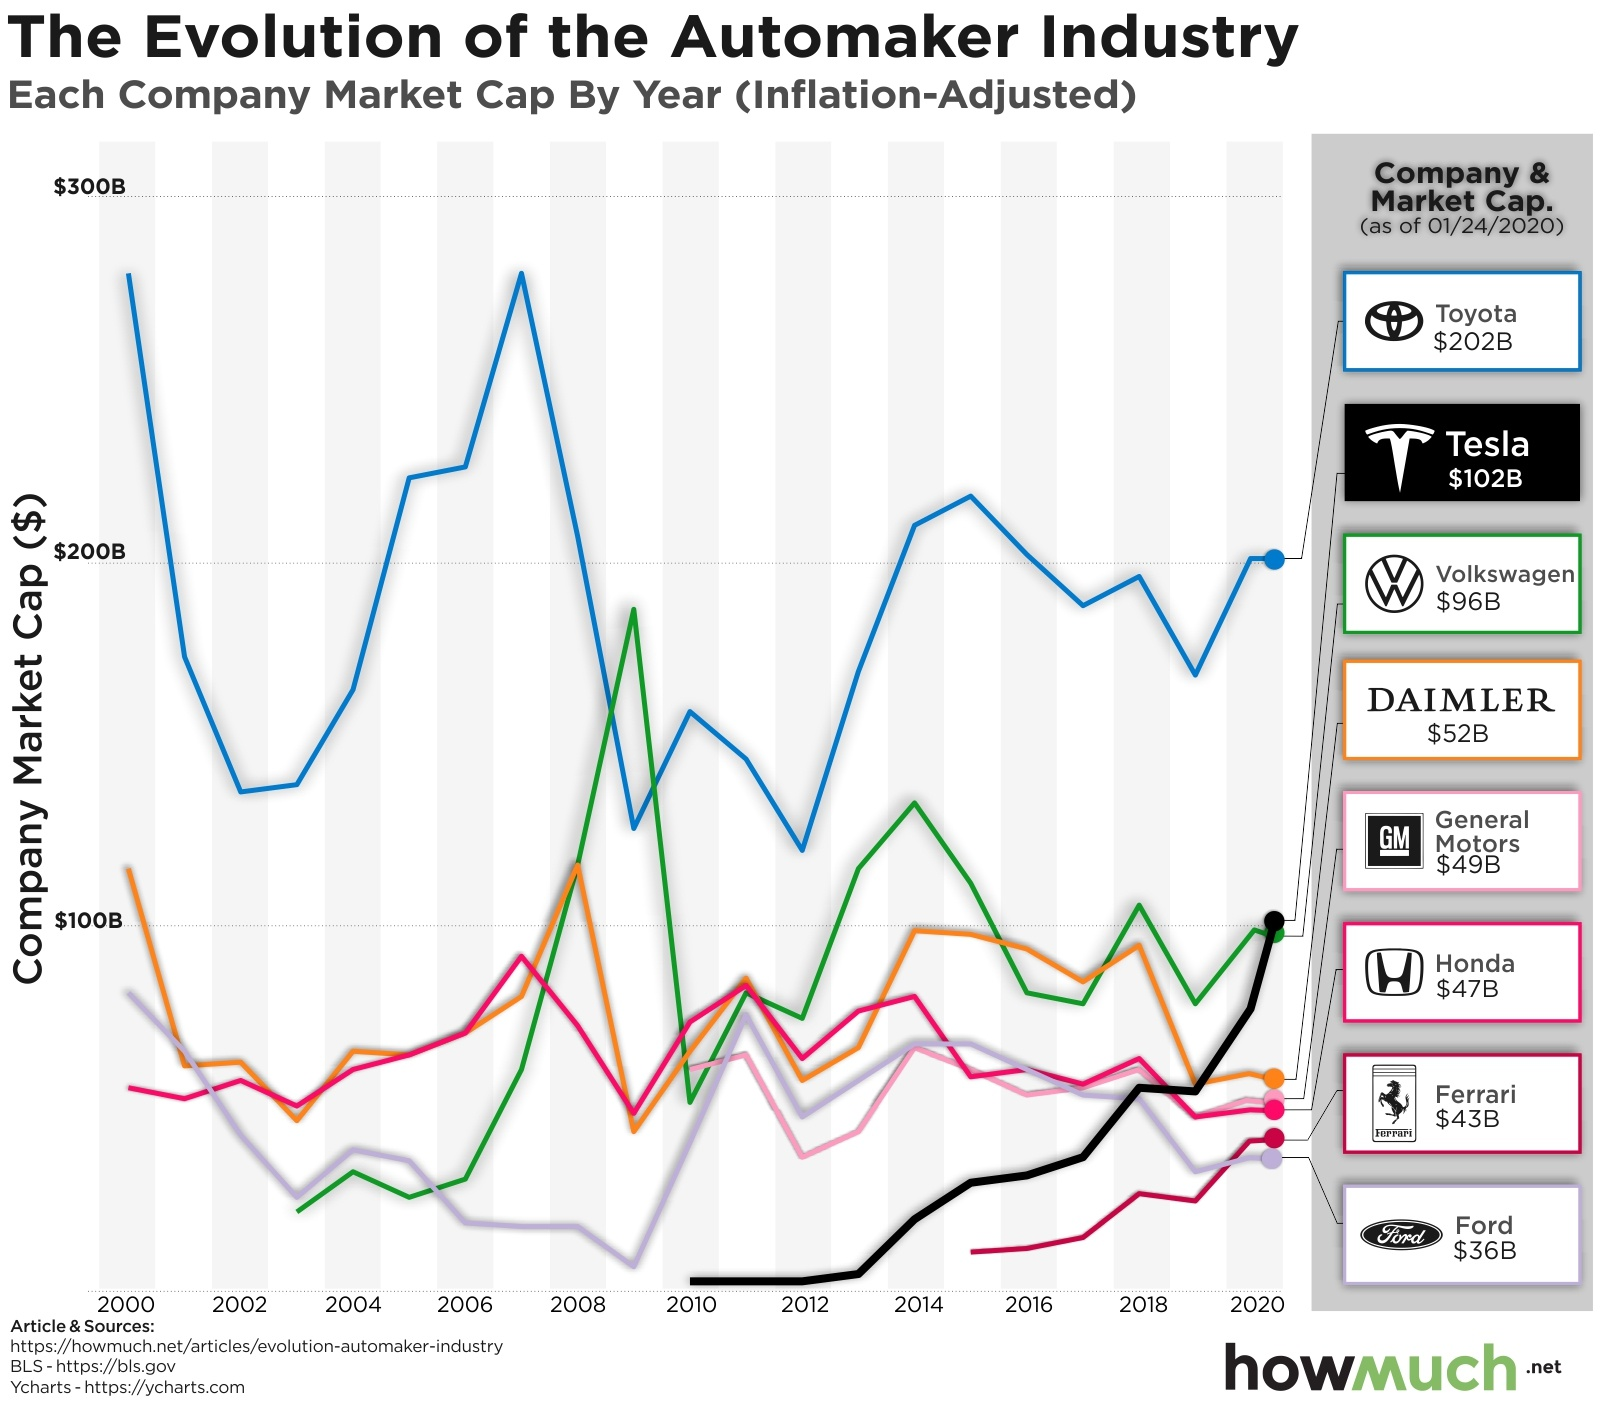 car companies by market cap